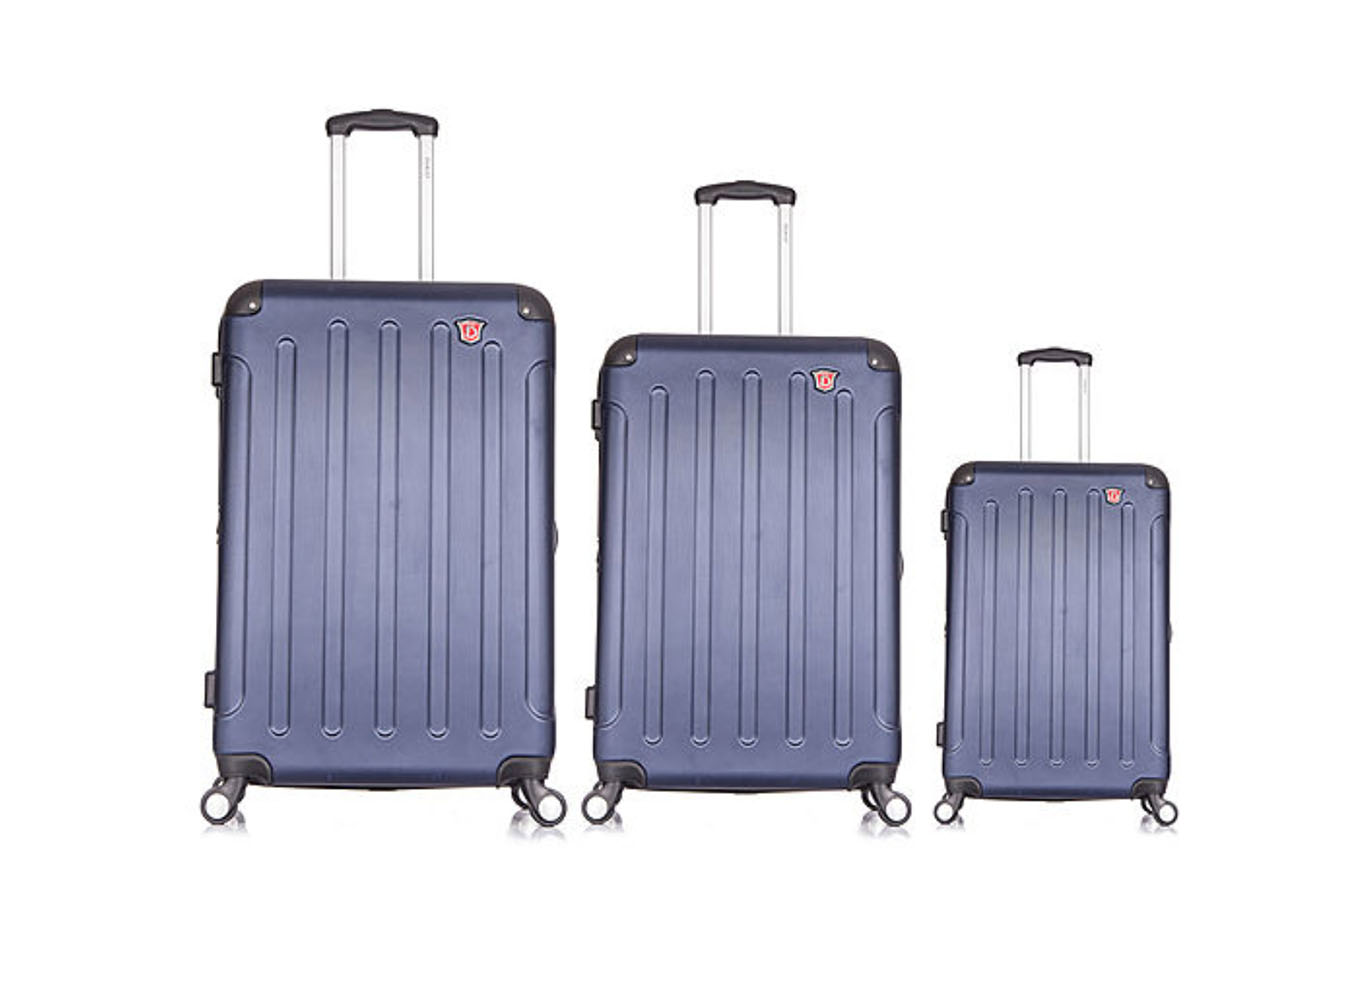 DUKAP Intely Smart Hardside Luggage Set